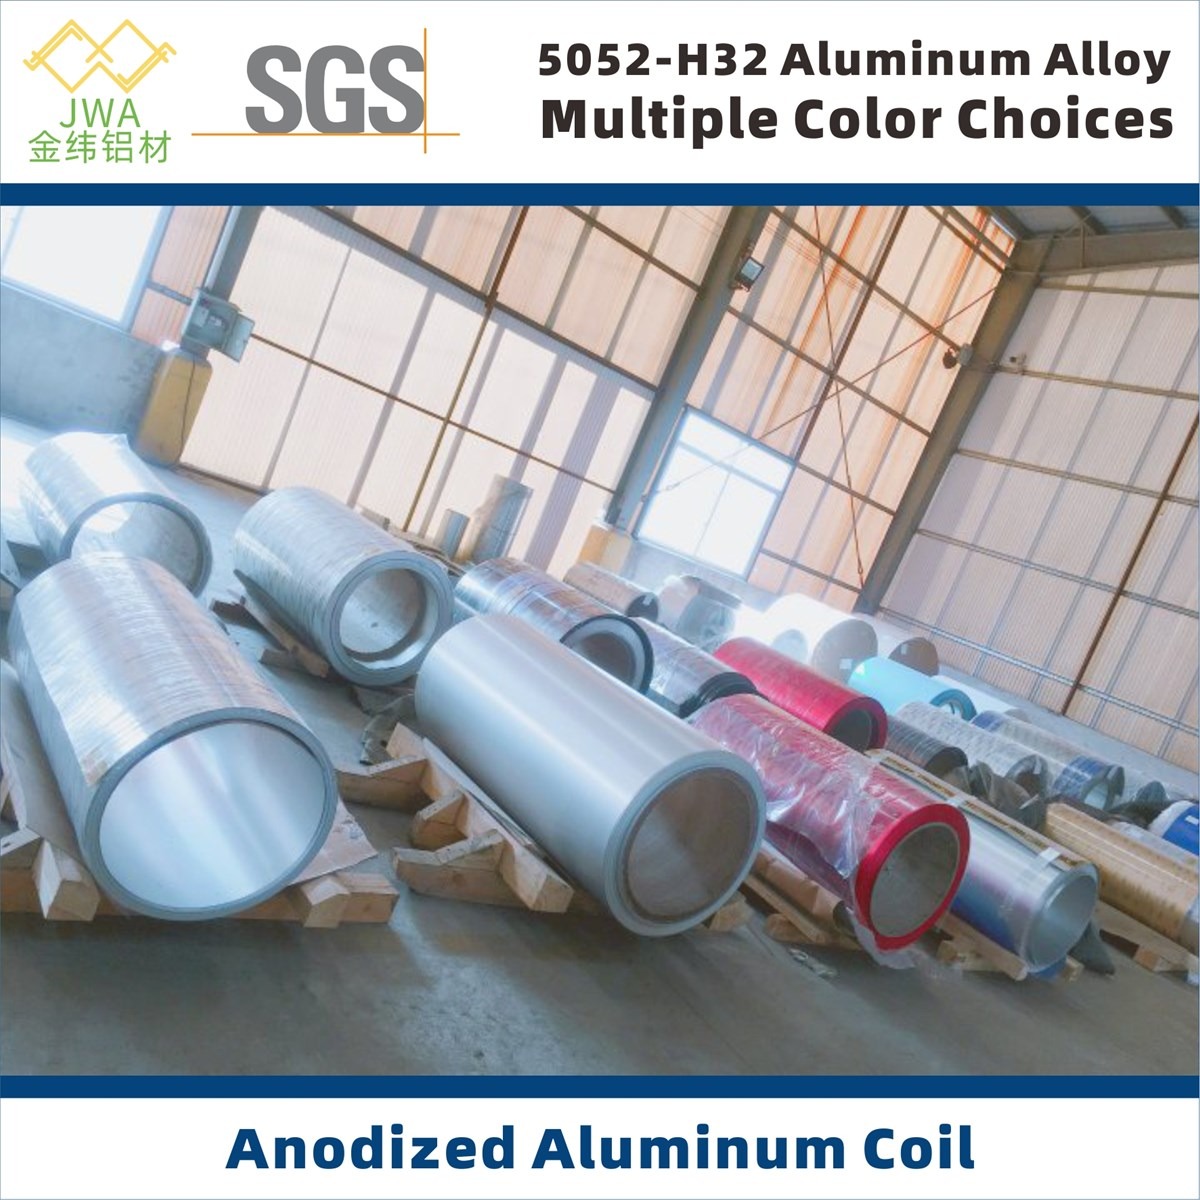 Multiple Color Anodized Aluminum Coil for Interior and Exterior Decoration Metal Building Facade Materials Anodising